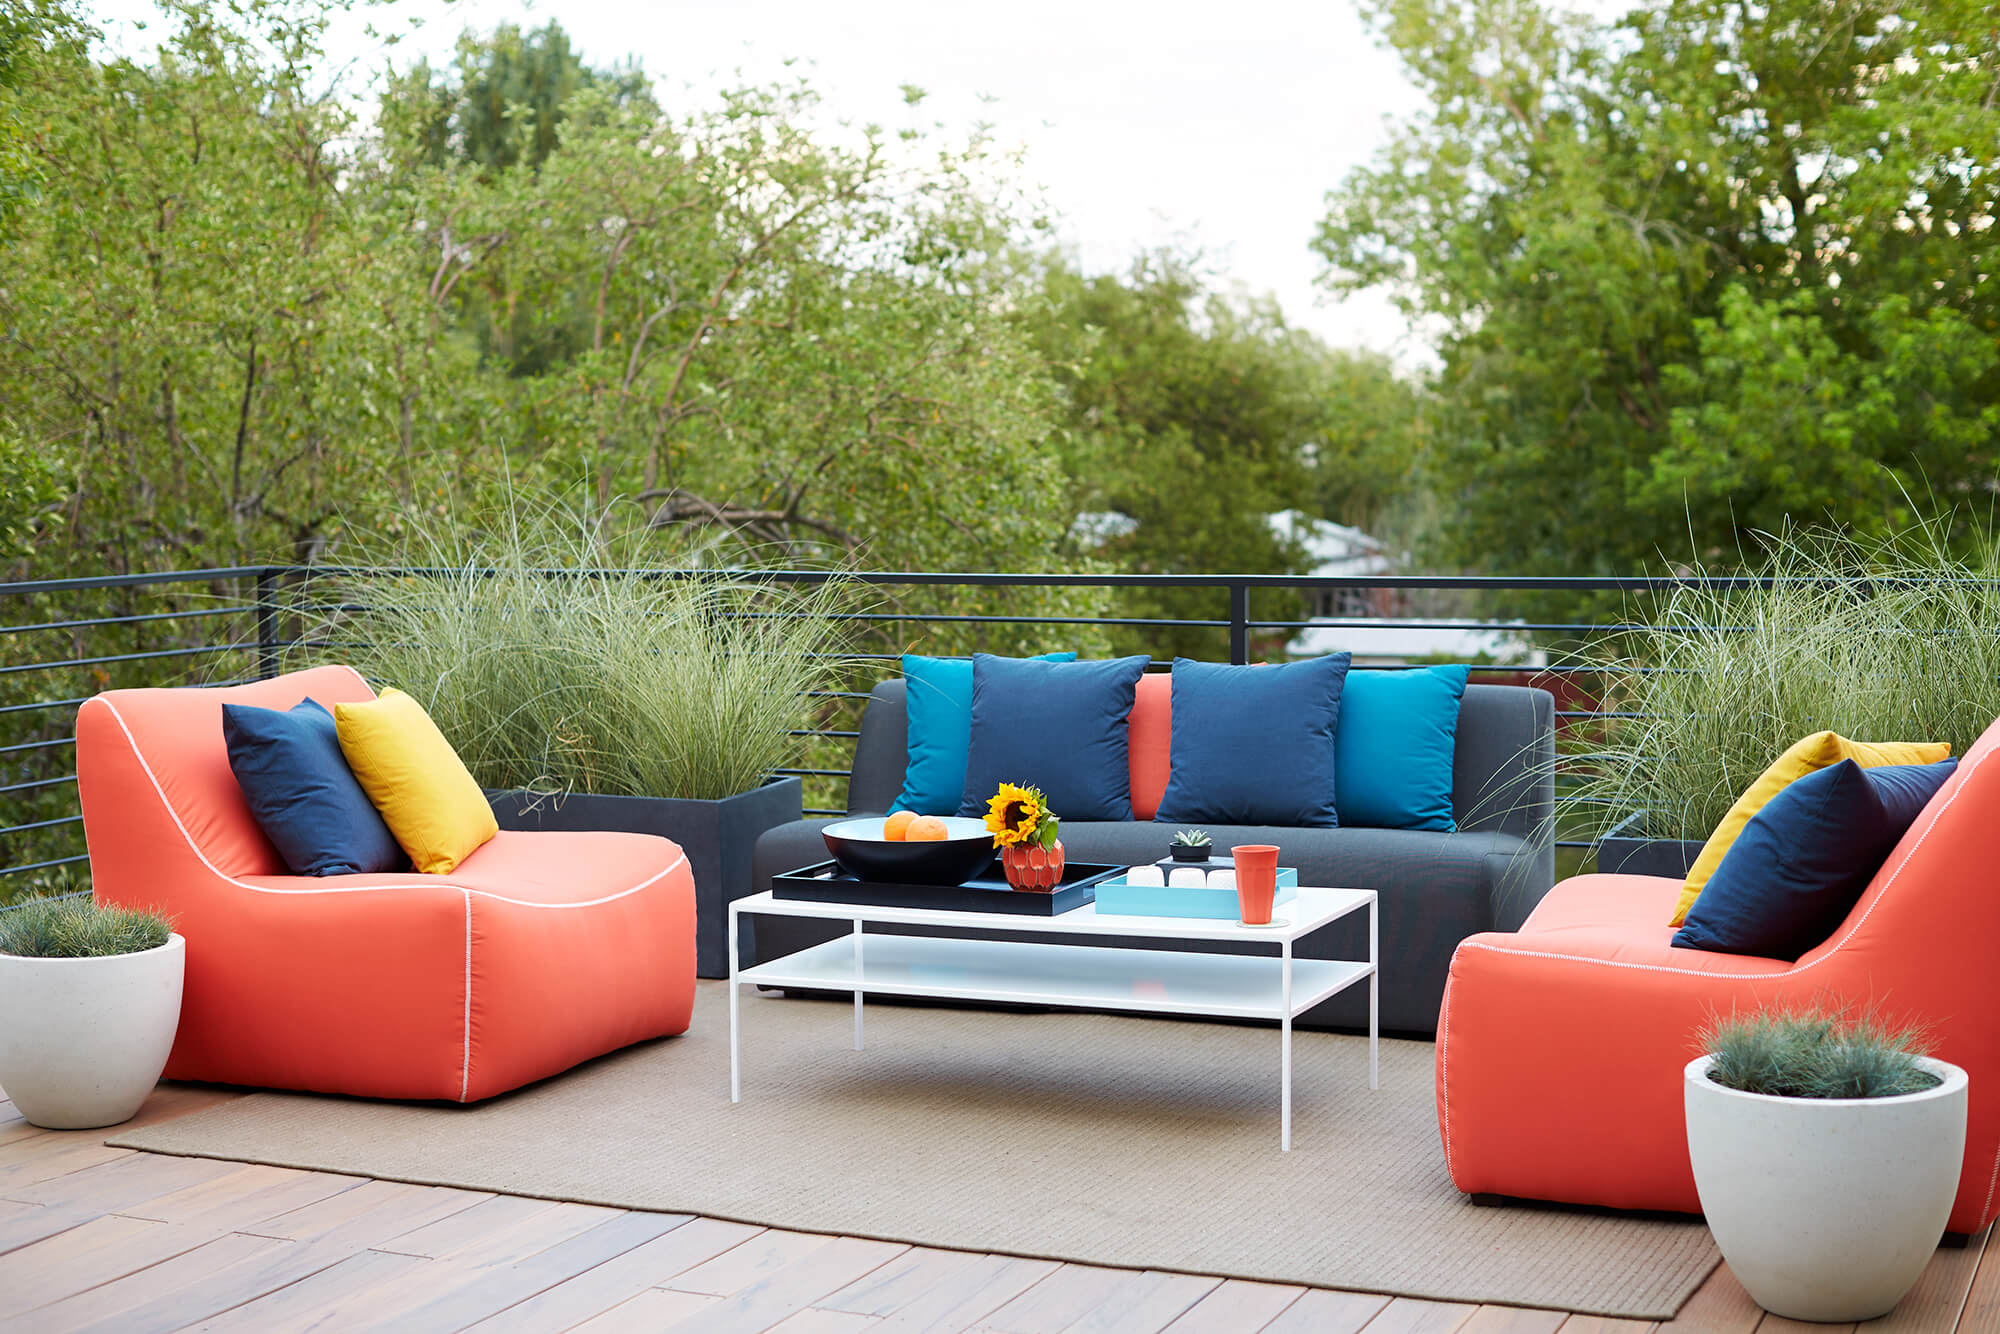 Fully Upholstered Outdoor Sofa Set, Lounge Sitting for Garden, Terrace & patio